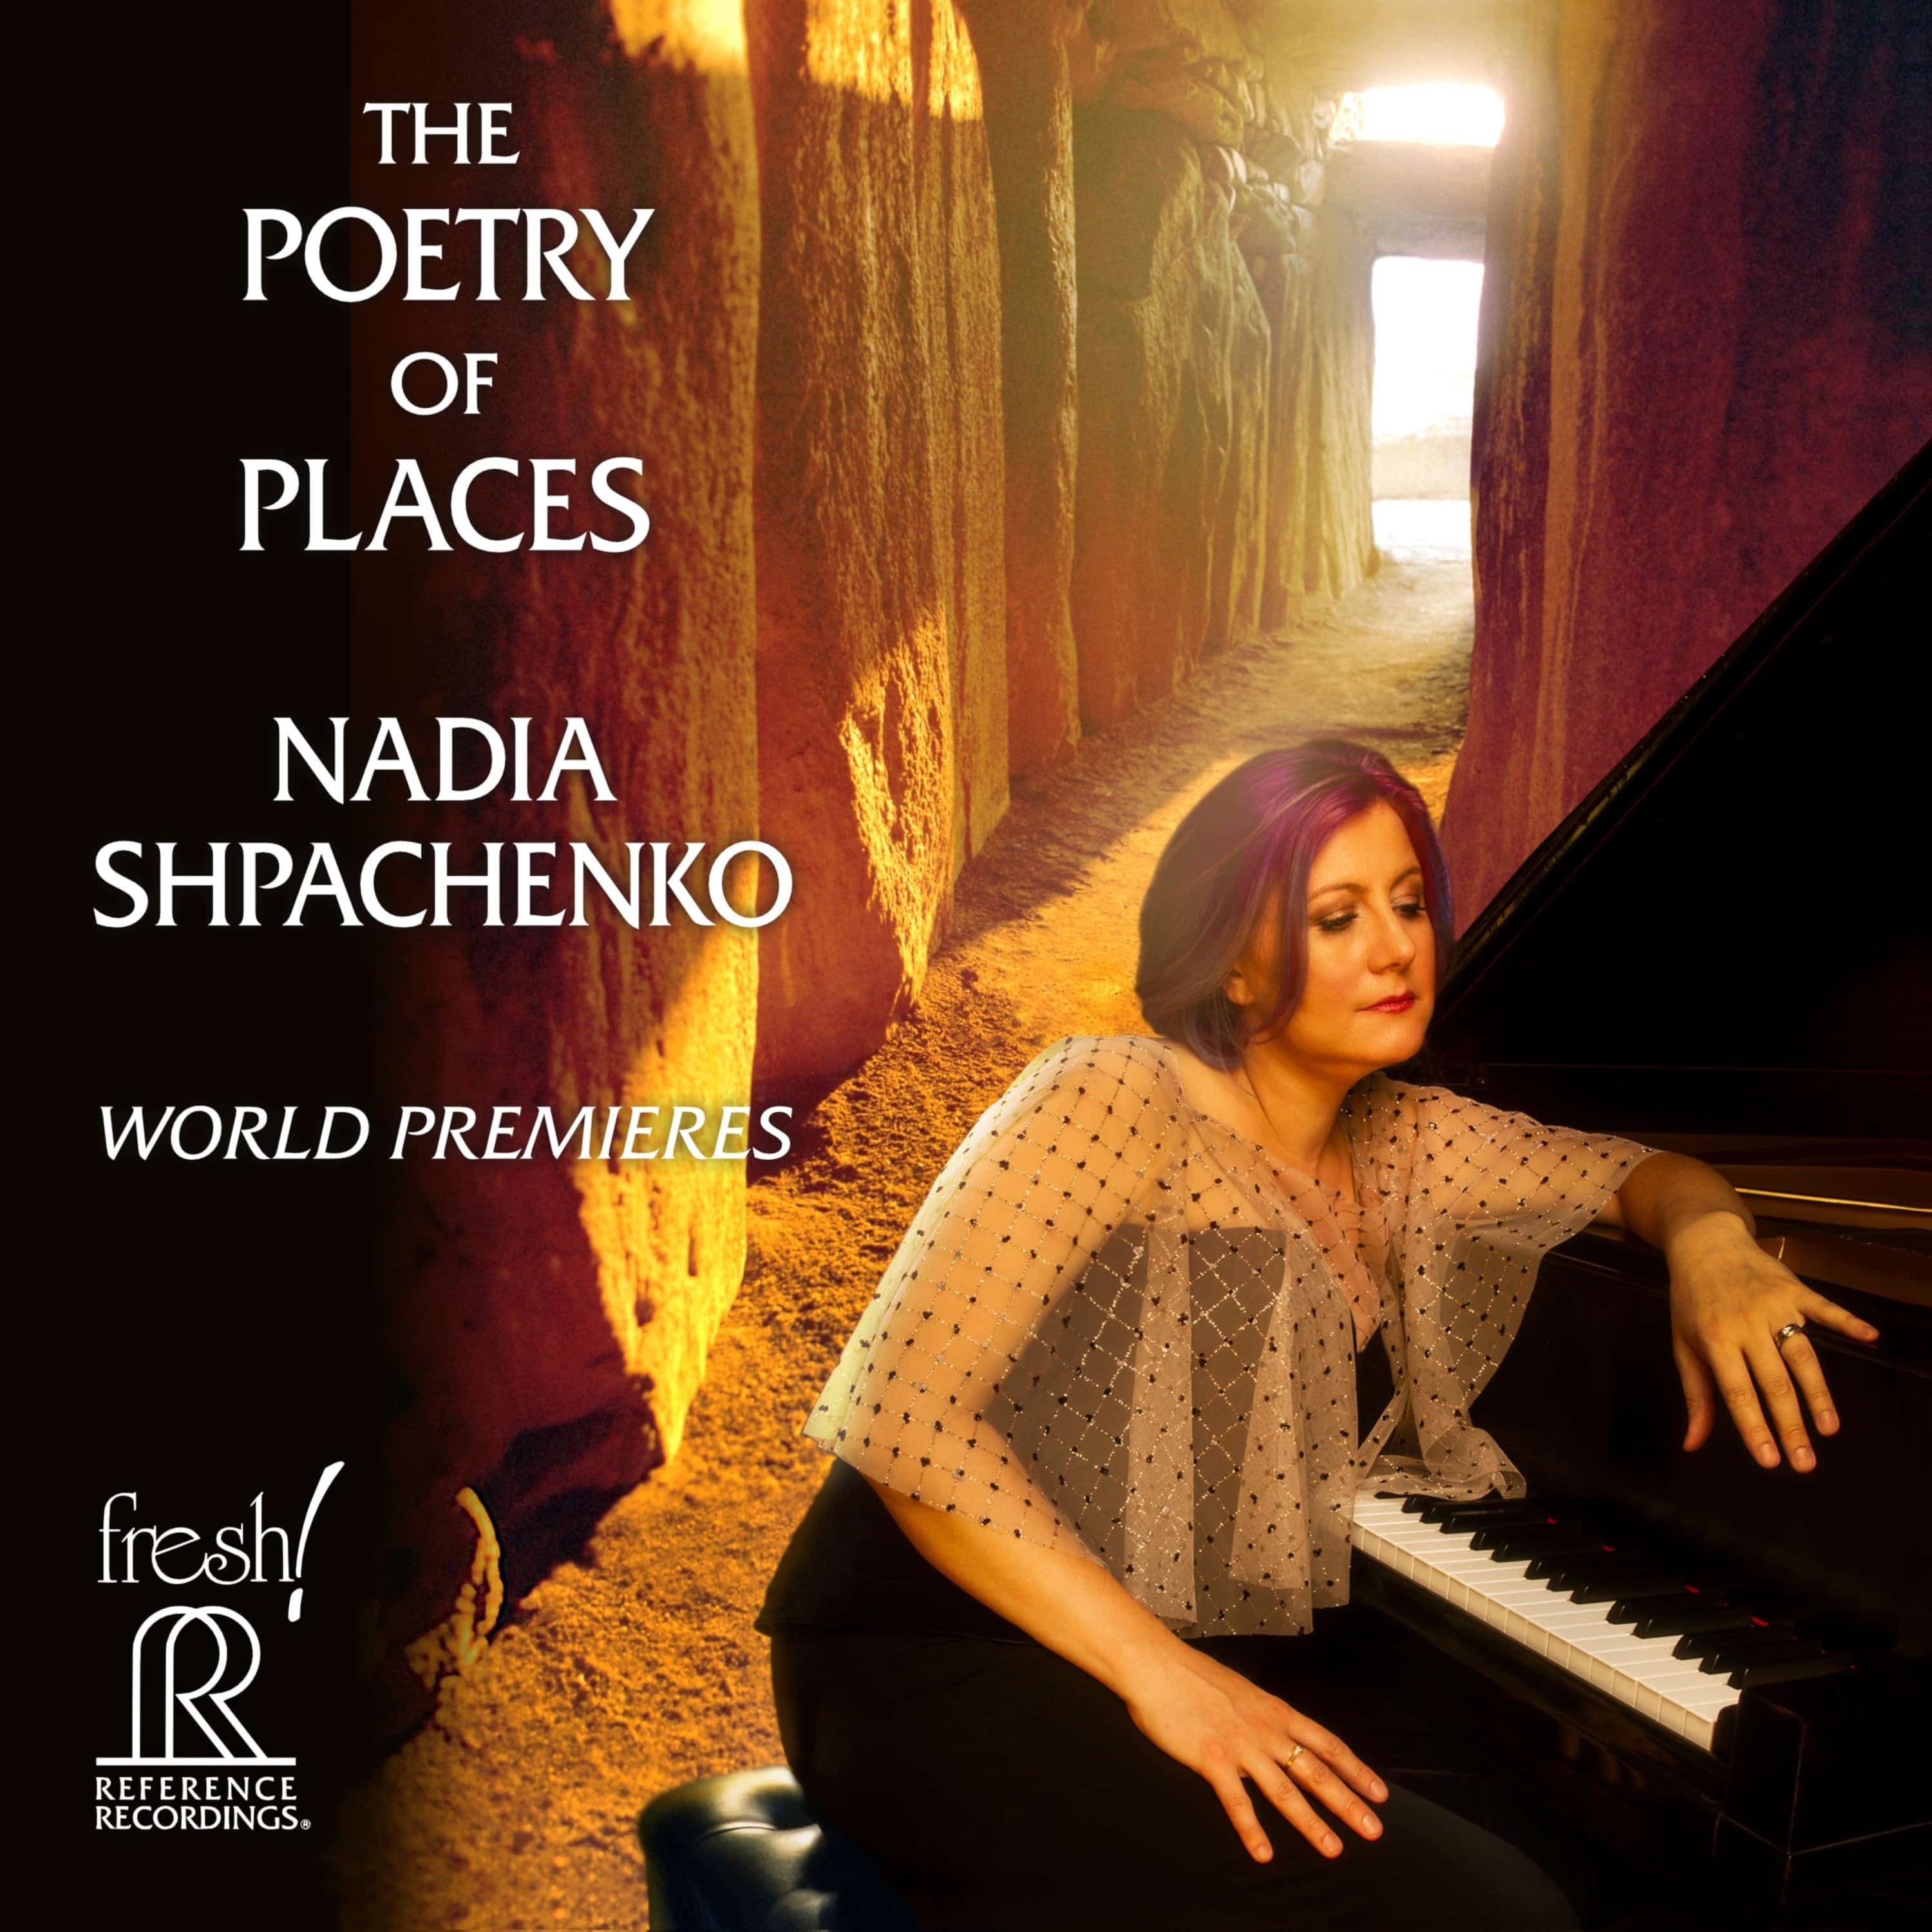 Nadia Shpachenko's The Poetry of Places recording album cover